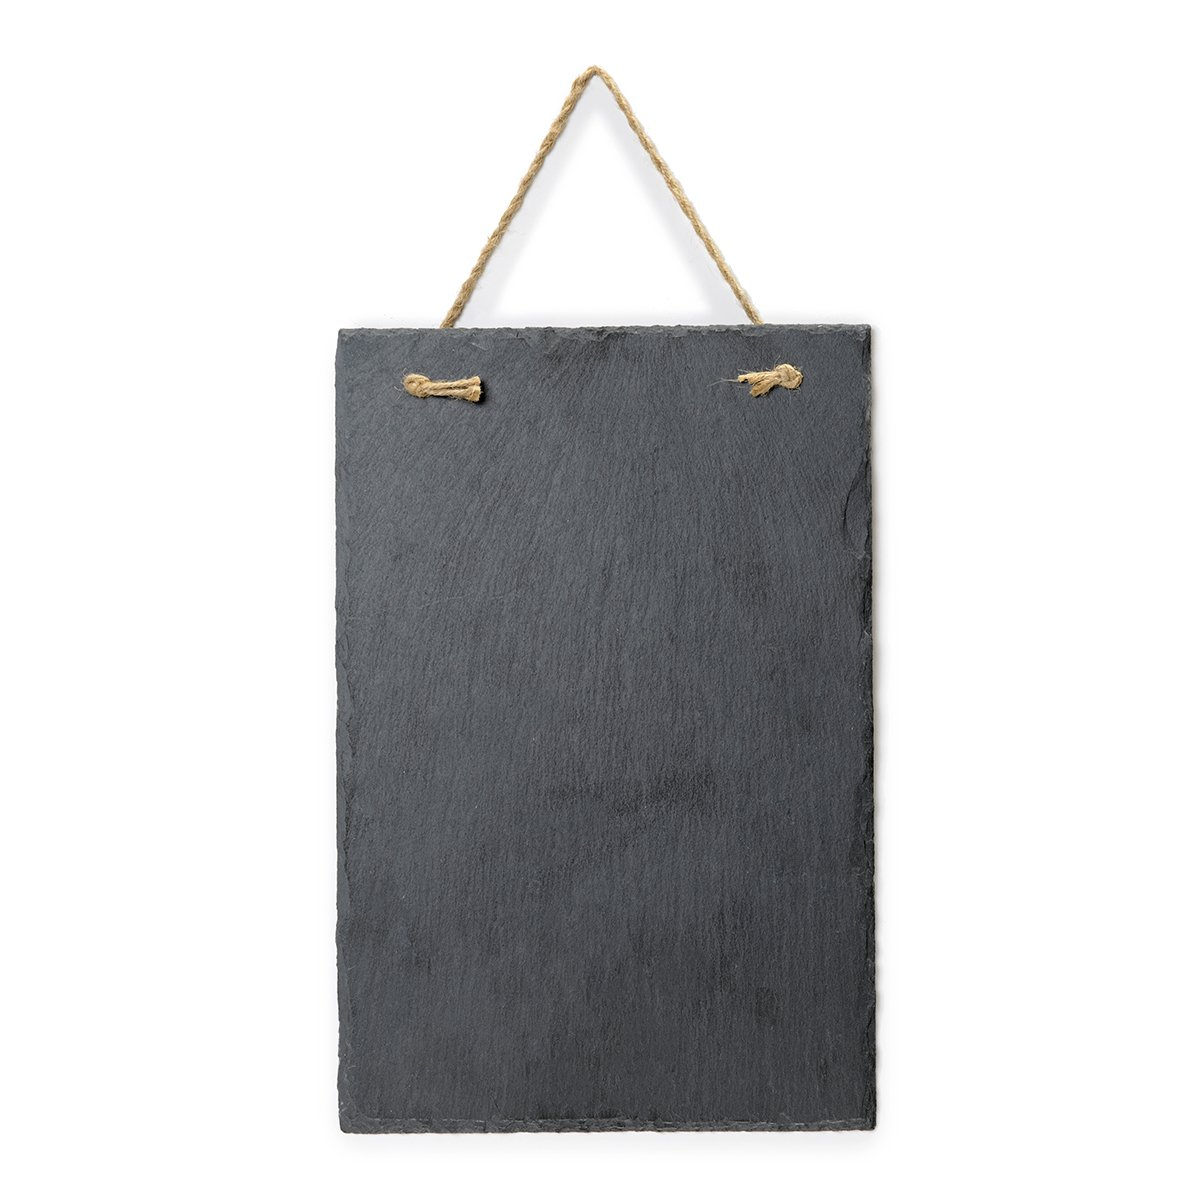 """Vintage Frameless Slate Chalkboard Sign (8""""x12"""") - Decorative Hanging Chalk Board for Rustic Wedding Signs, Kitchen Pantry & Wall Decor"""